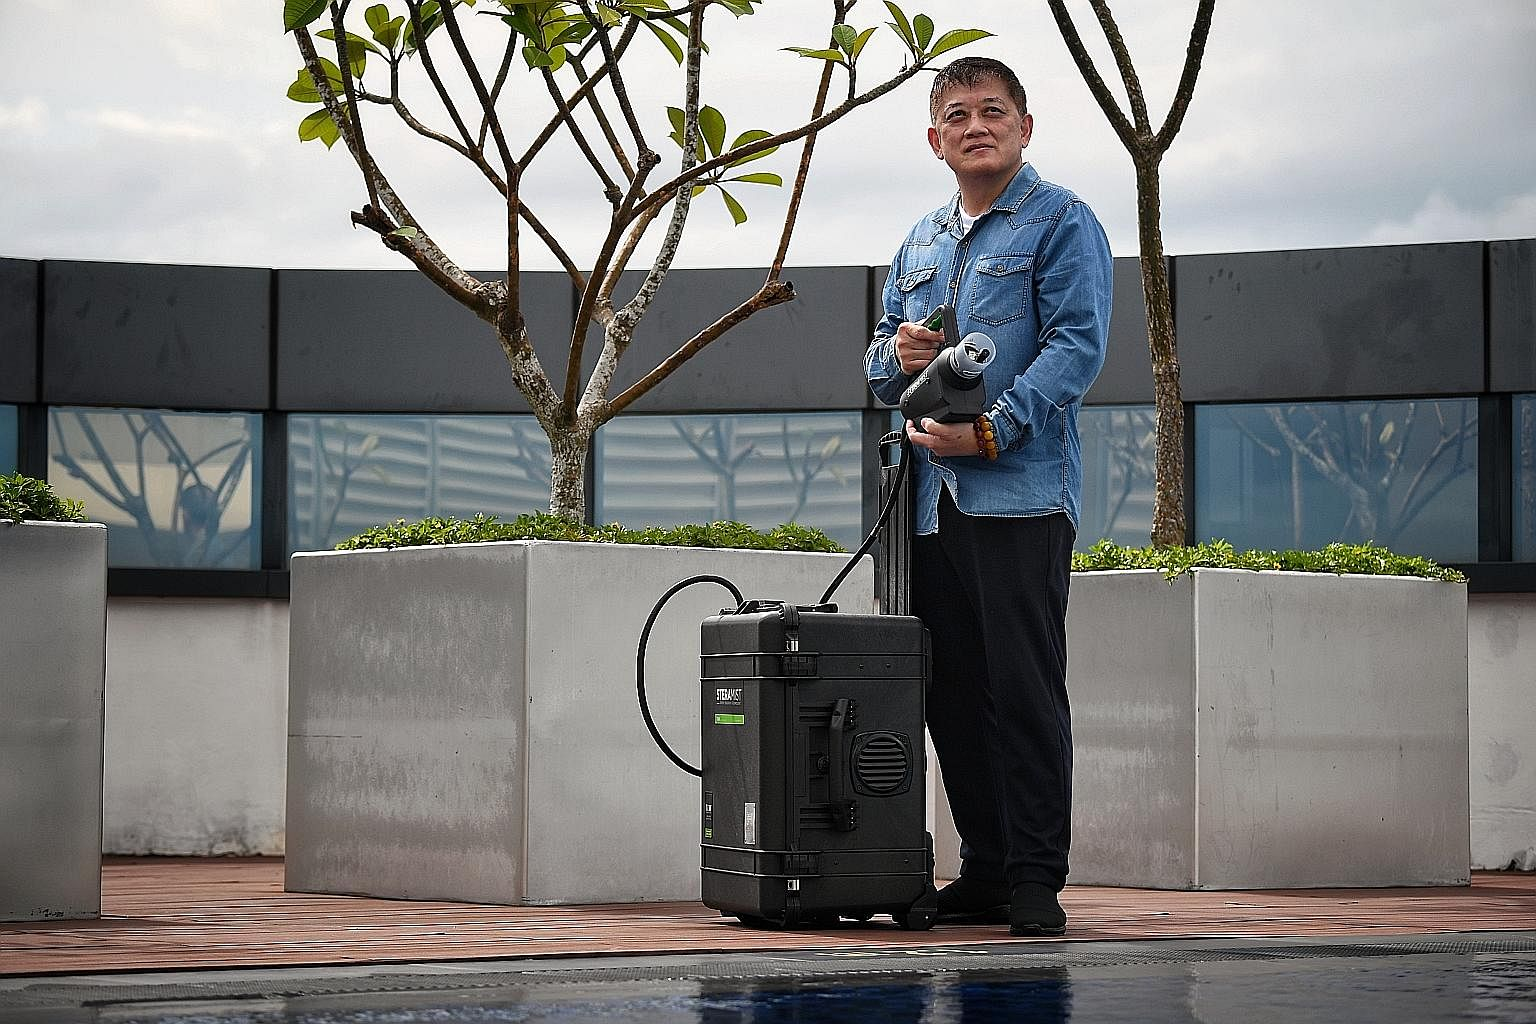 With his Oman projects halted, Mr Nicholas Koh has ventured into new businesses, including marketing the Tomi SteraMist, a decontamination solution from the United States. Ms Reene Ho-Phang and her husband Peter Phang (both above) - who run travel ma